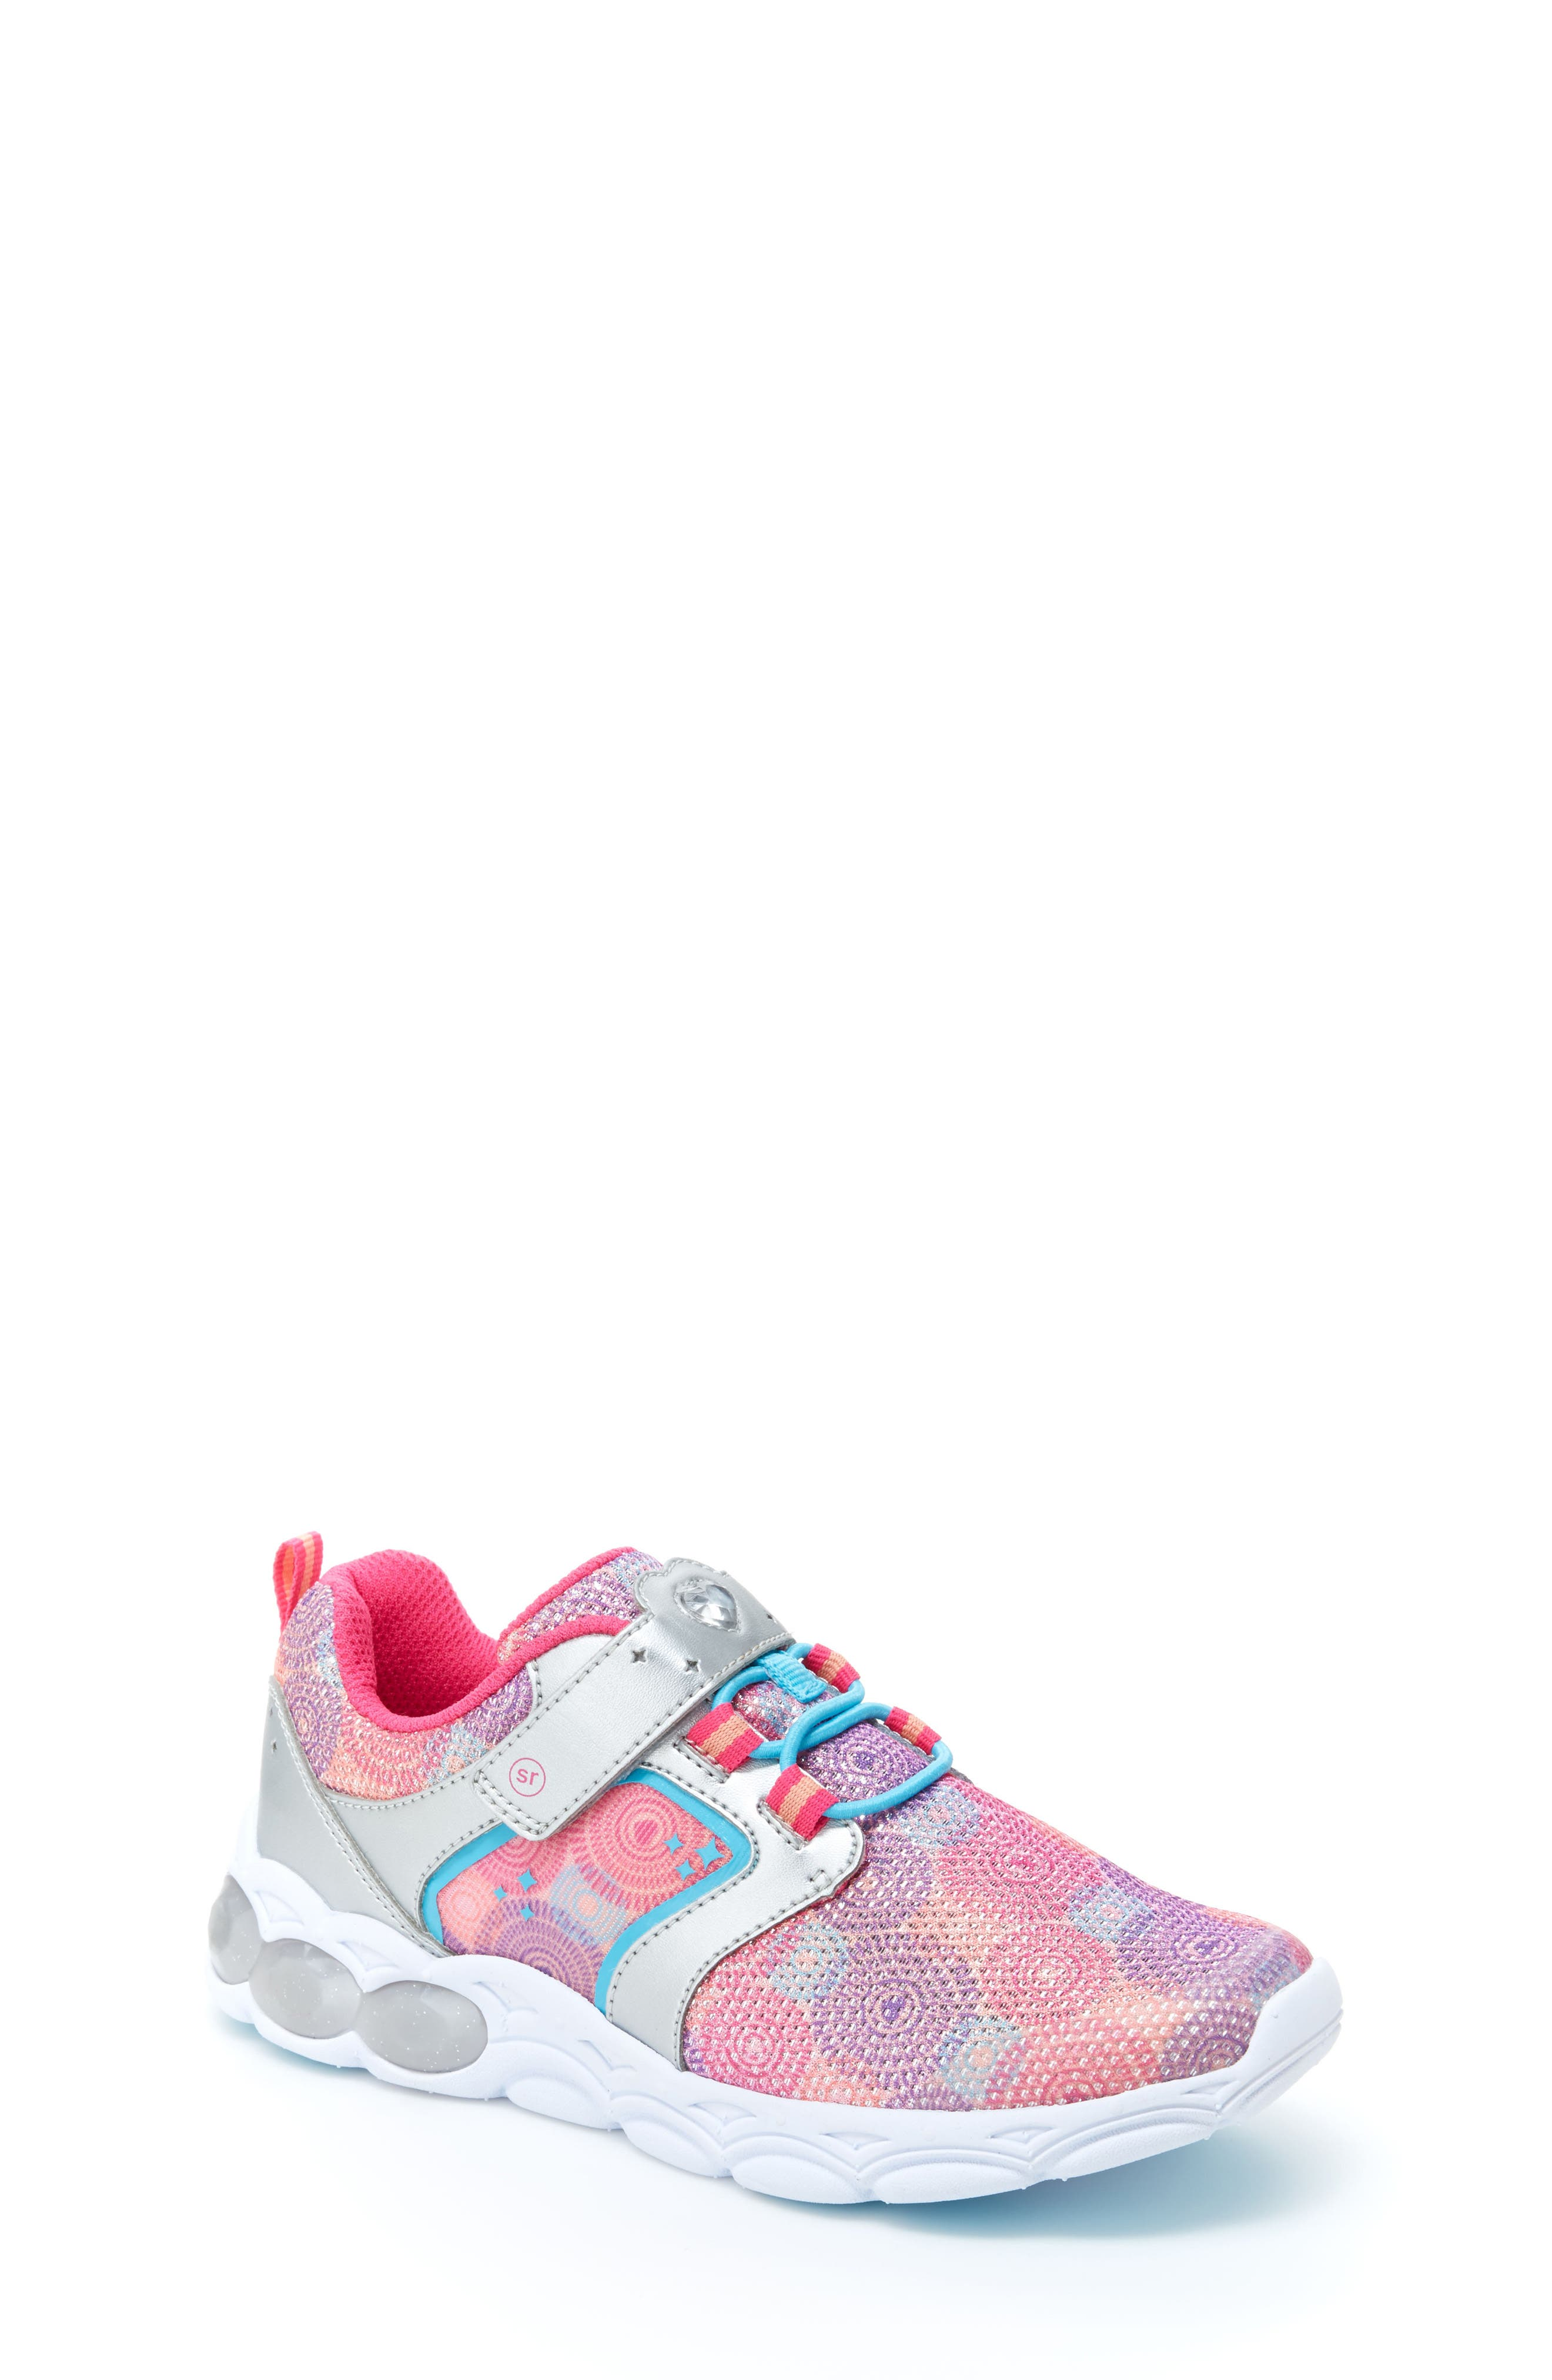 Lights Lively Light-Up Sneaker,                             Main thumbnail 1, color,                             Rainbow